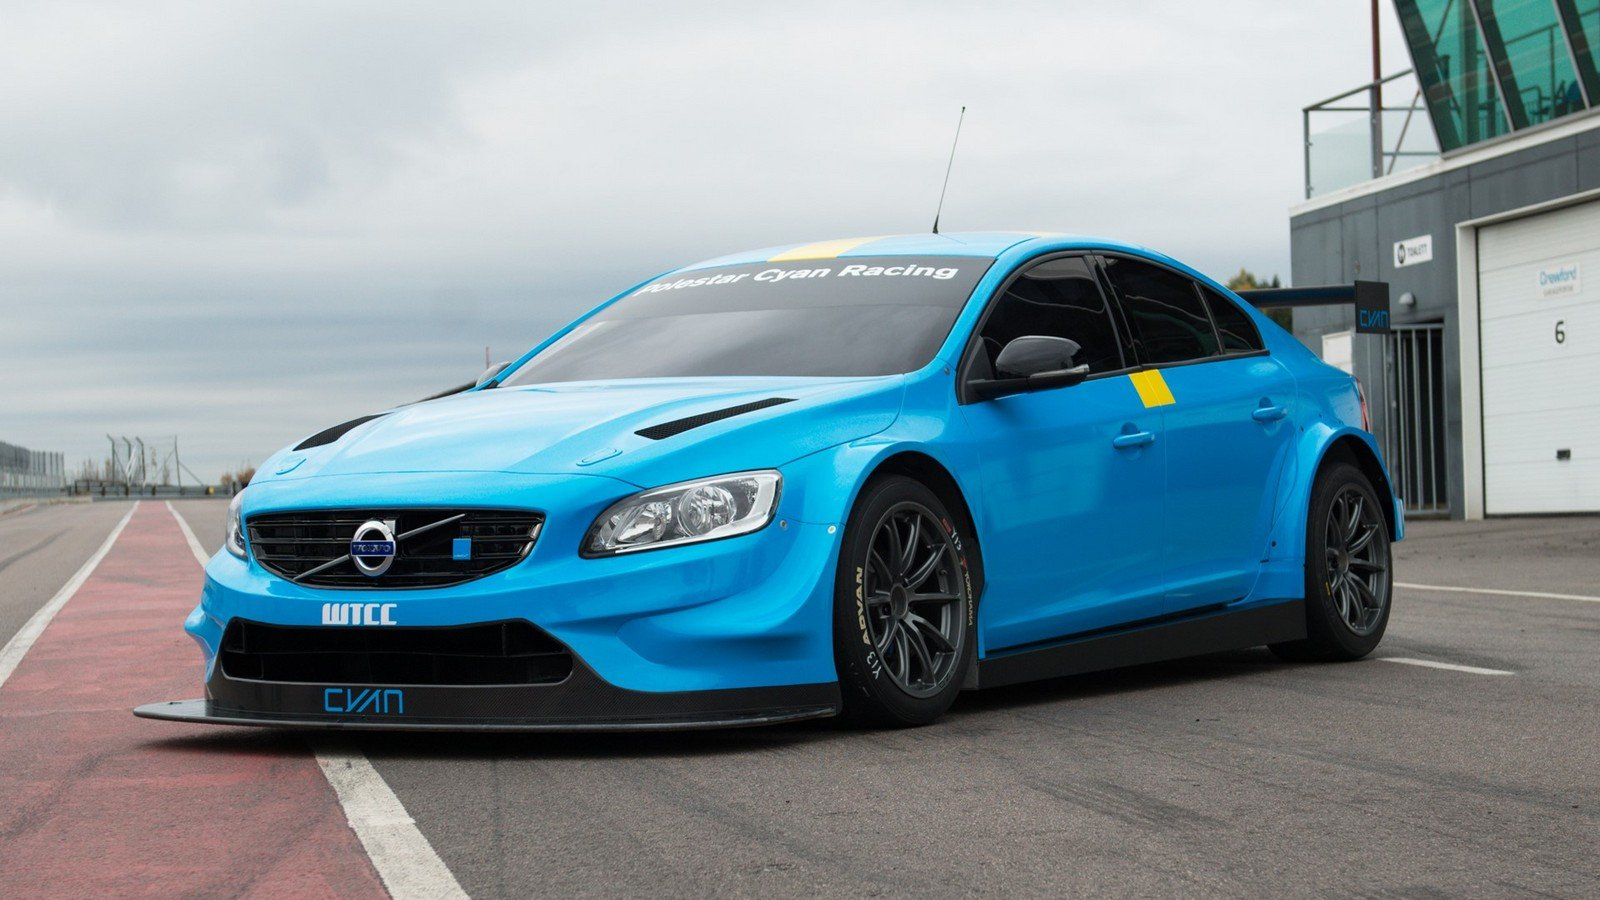 2016 volvo s60 polestar tc1 race car picture 650364 car review top speed. Black Bedroom Furniture Sets. Home Design Ideas